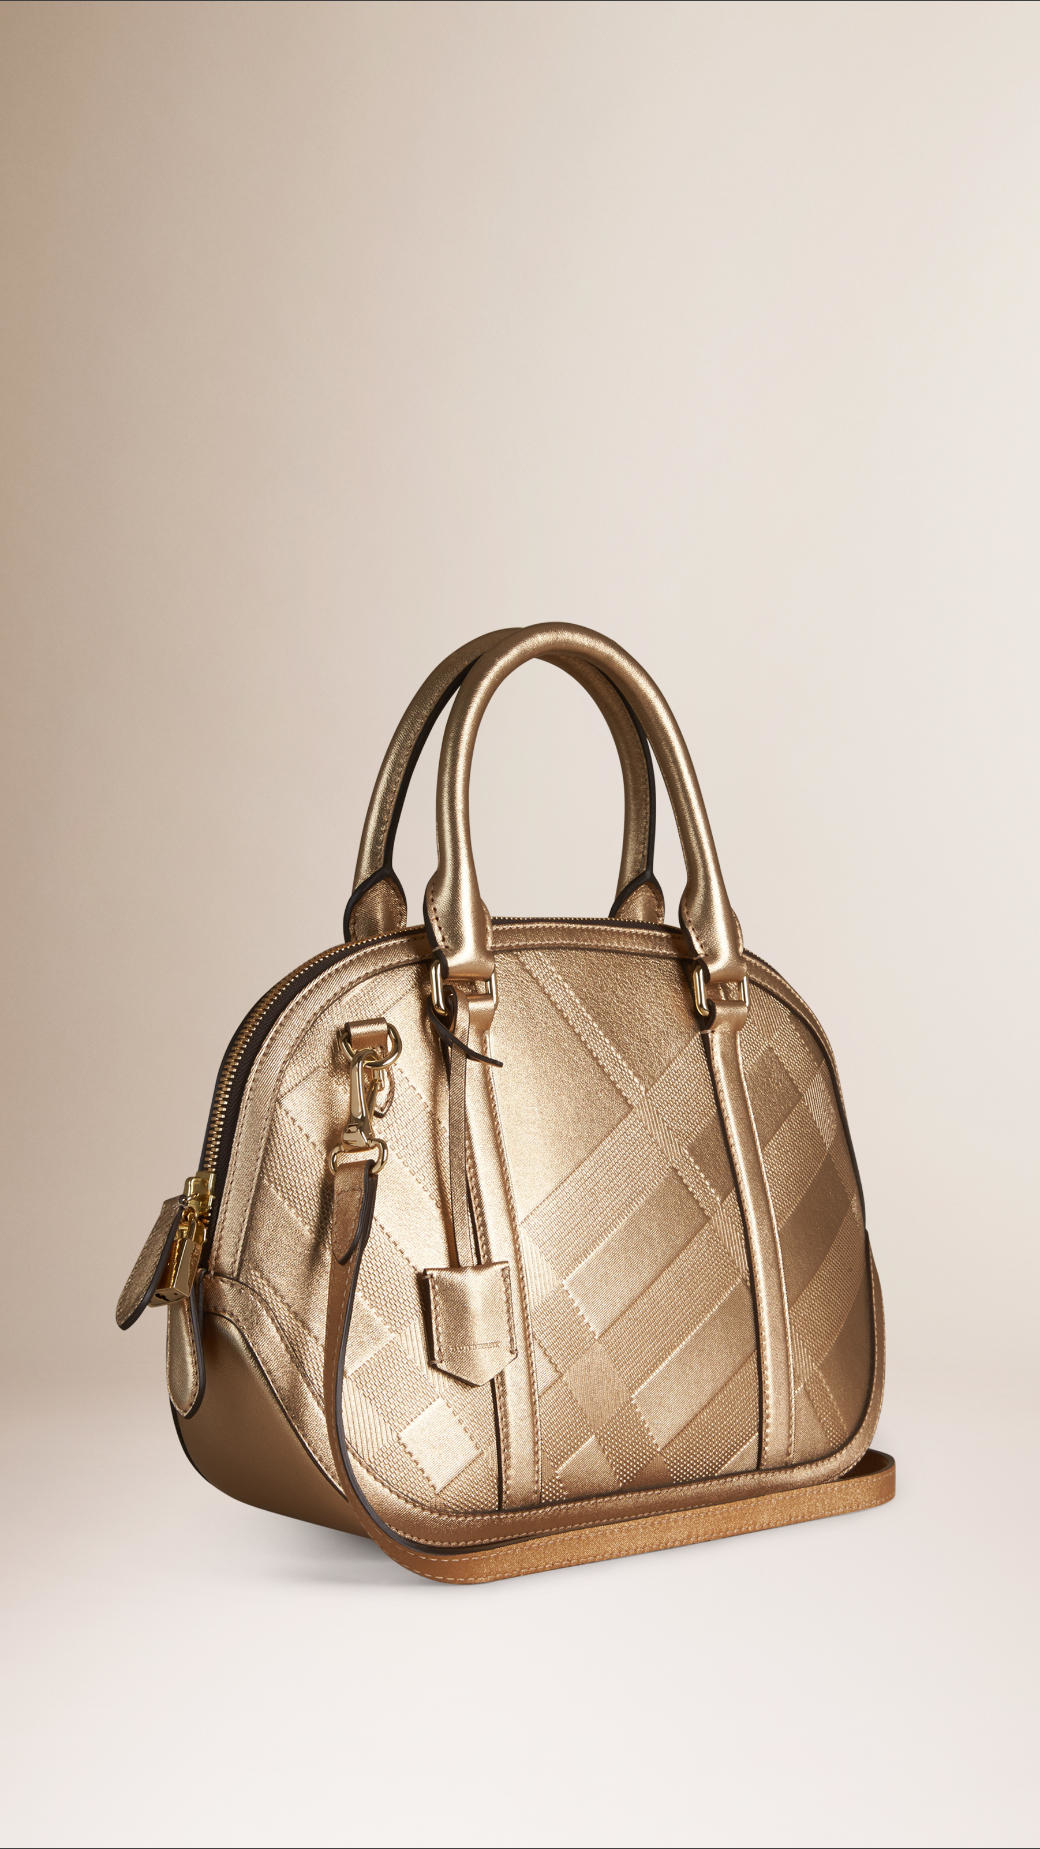 4b554f64aa6e Lyst - Burberry The Small Orchard Embossed Check Leather Bag in Metallic